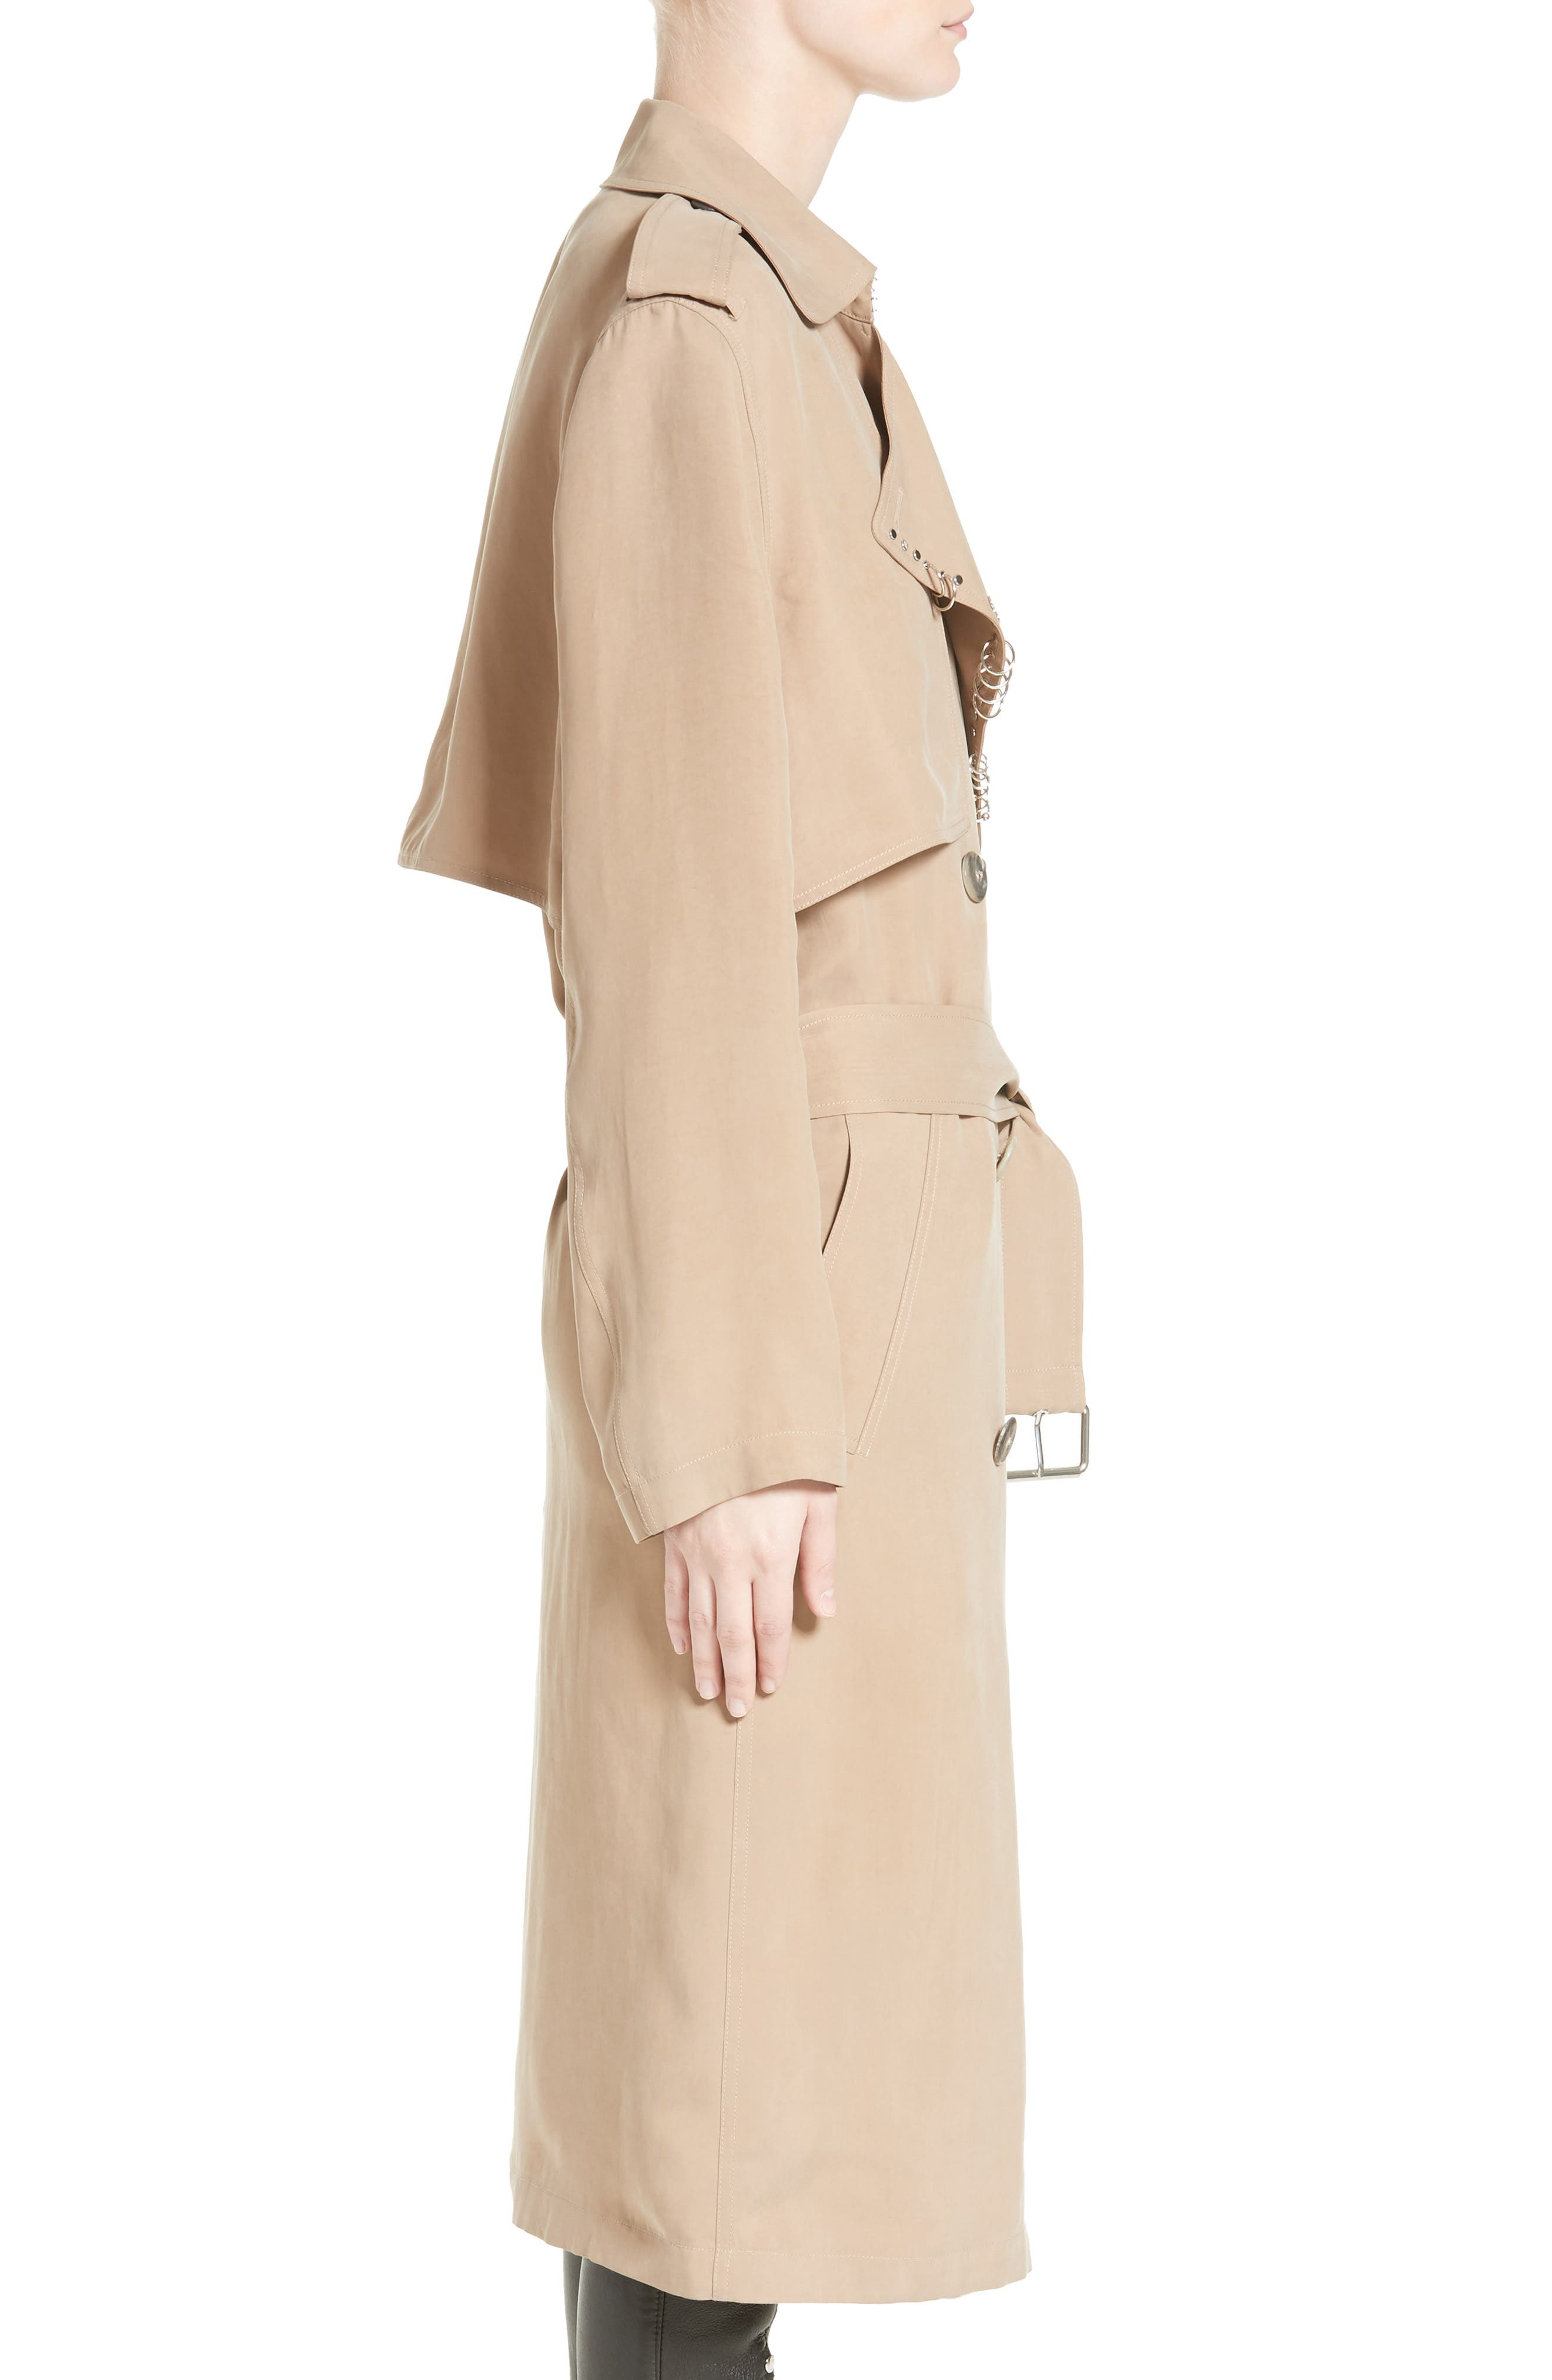 Pierced Trench Coat,                             Alternate thumbnail 3, color,                             200